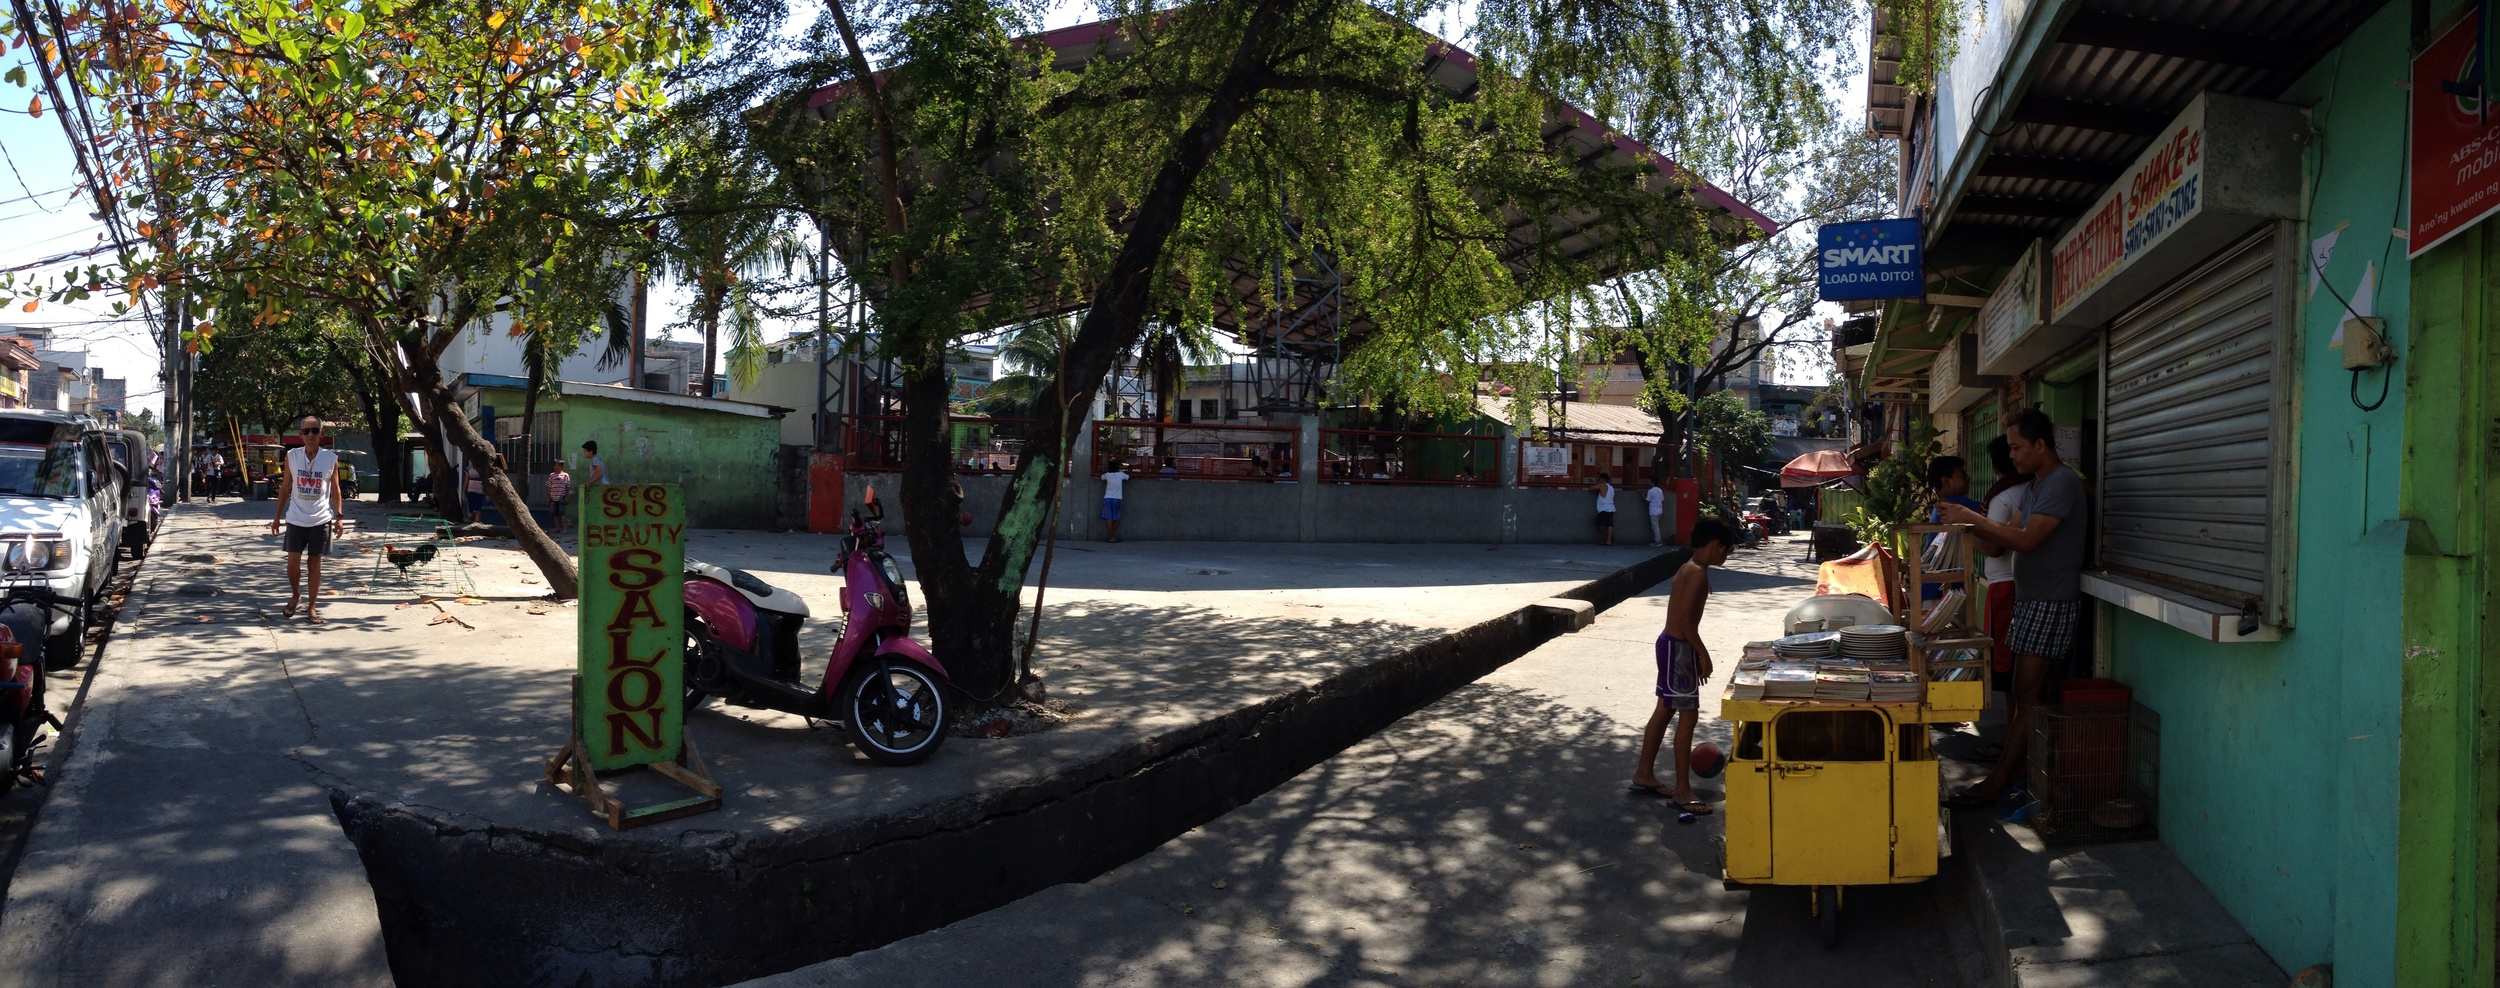 From left to right: barangay hall, basketball court, open space, local shops